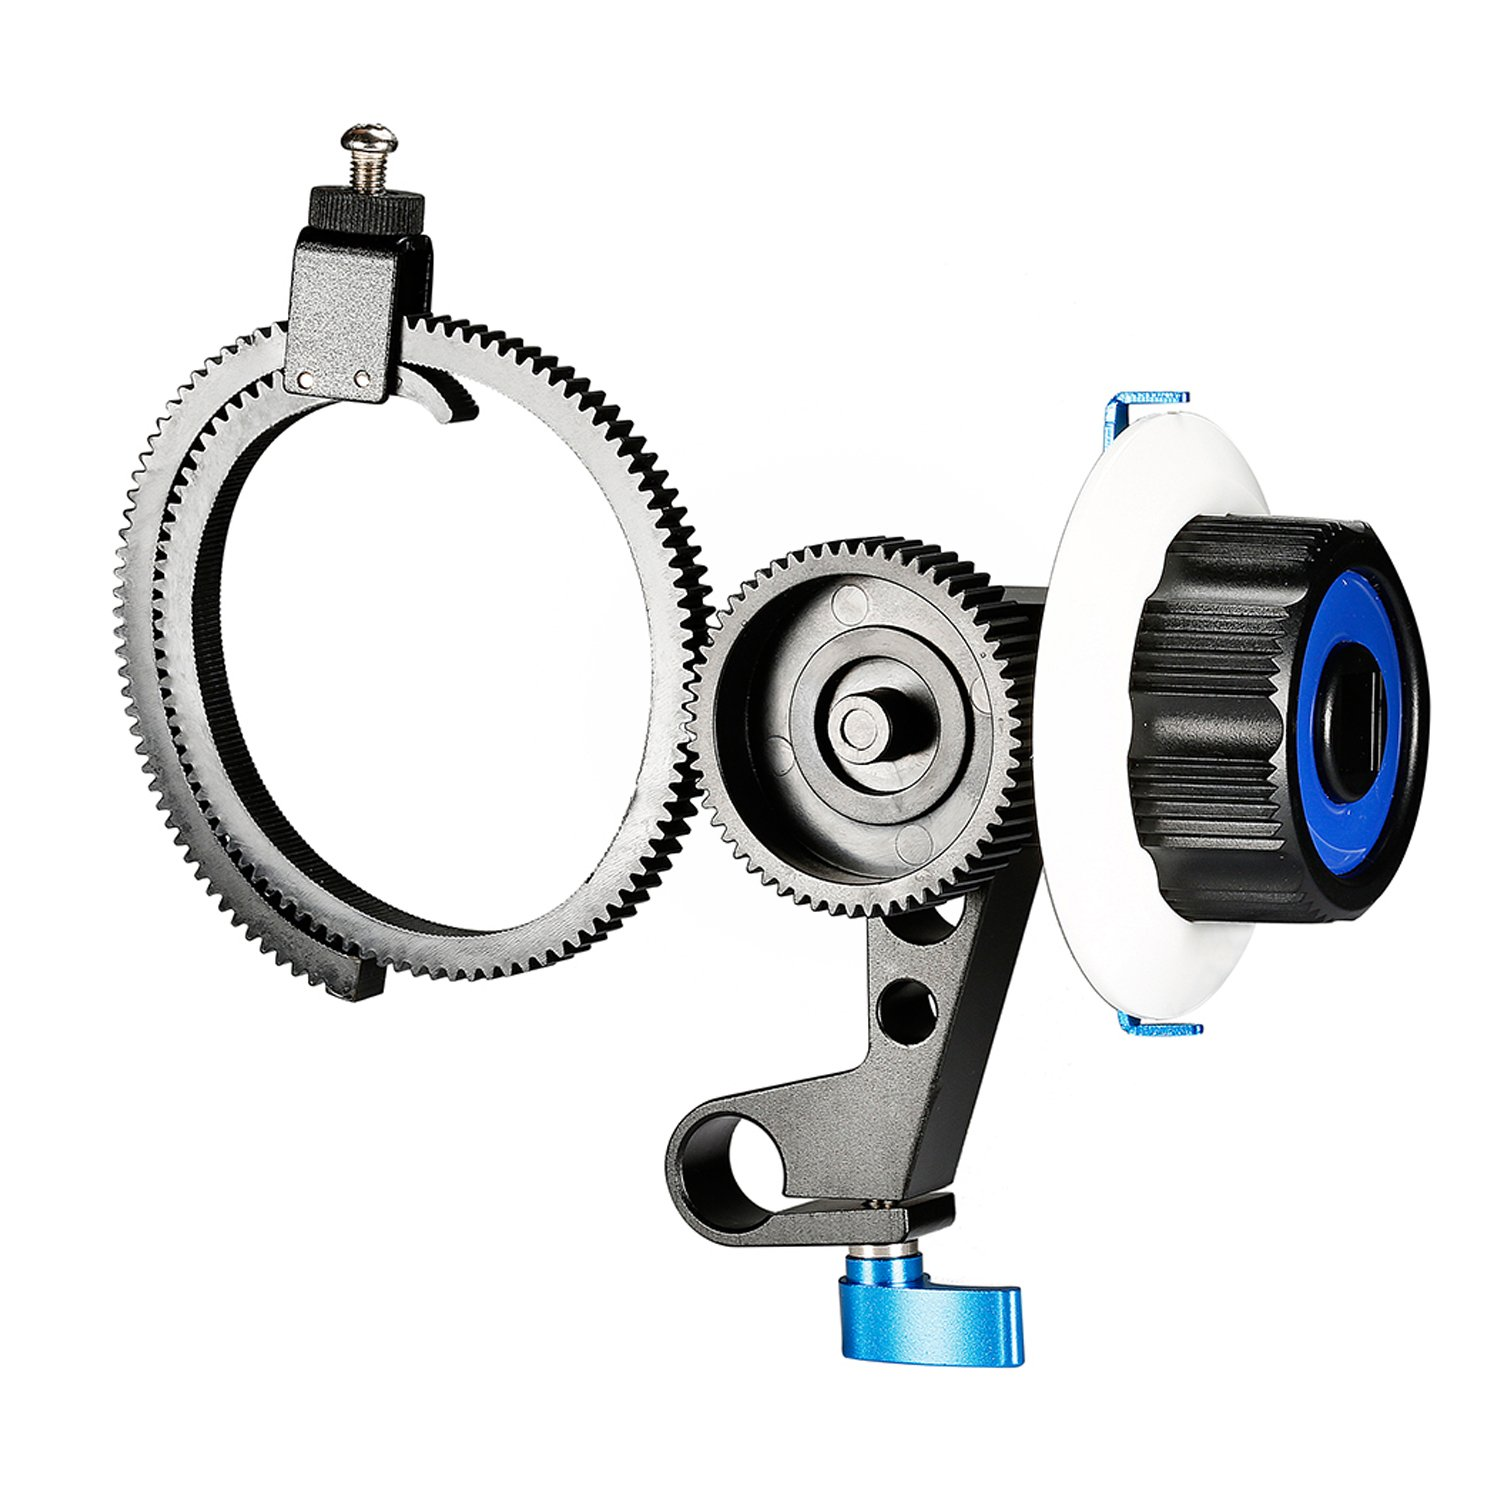 Neewer Follow Focus with Single 15mm DSLR Cameras